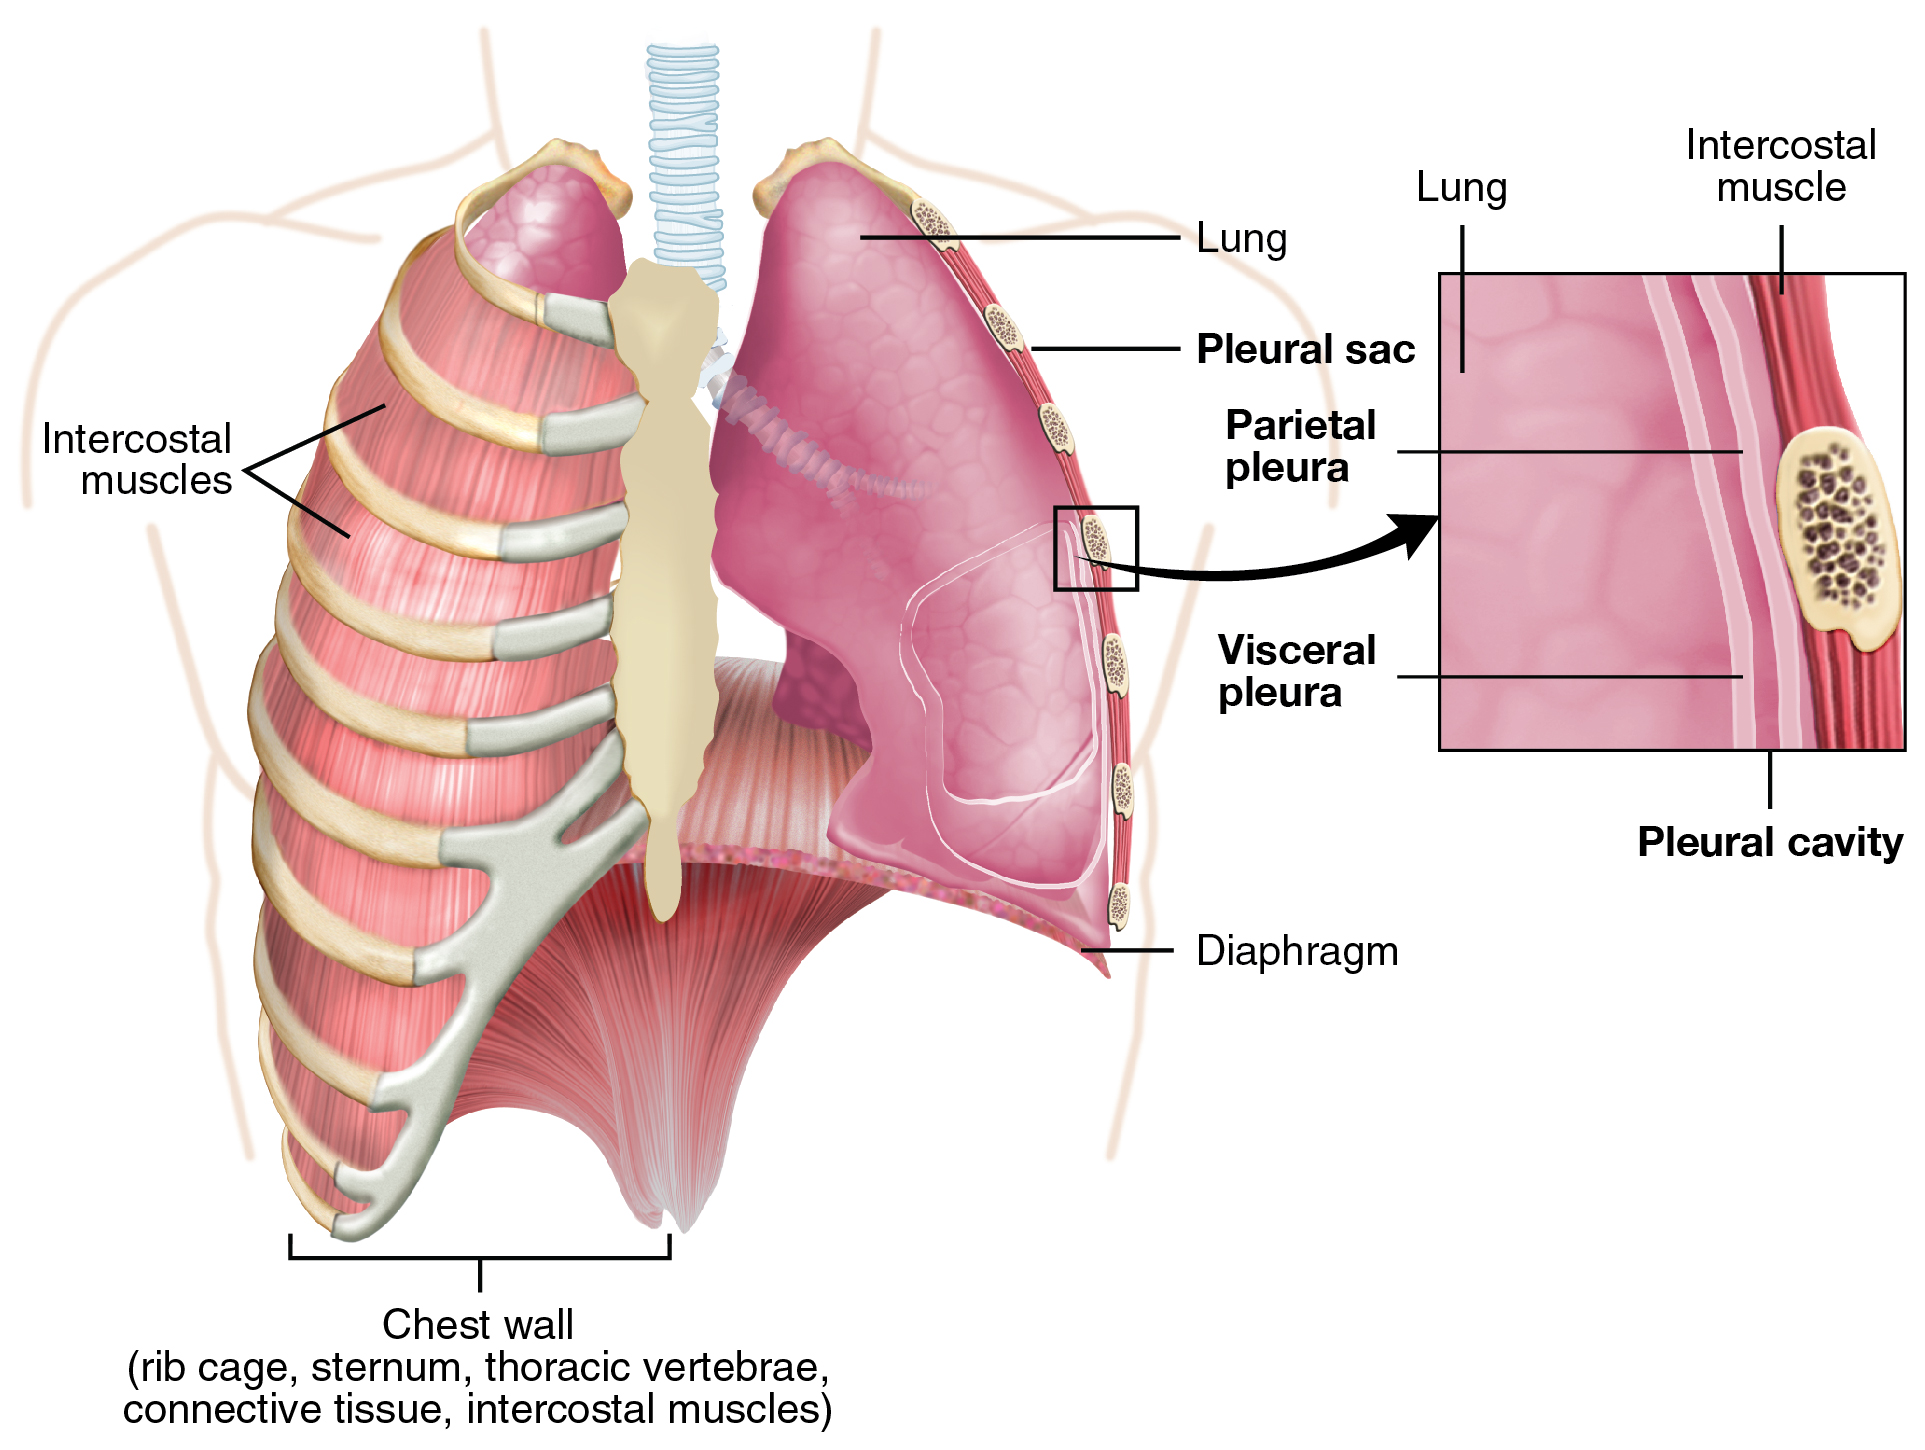 This figure shows the lungs and the chest wall, which protects the lungs, in the left panel. In the right panel, a magnified image shows the pleural cavity and a pleural sac.